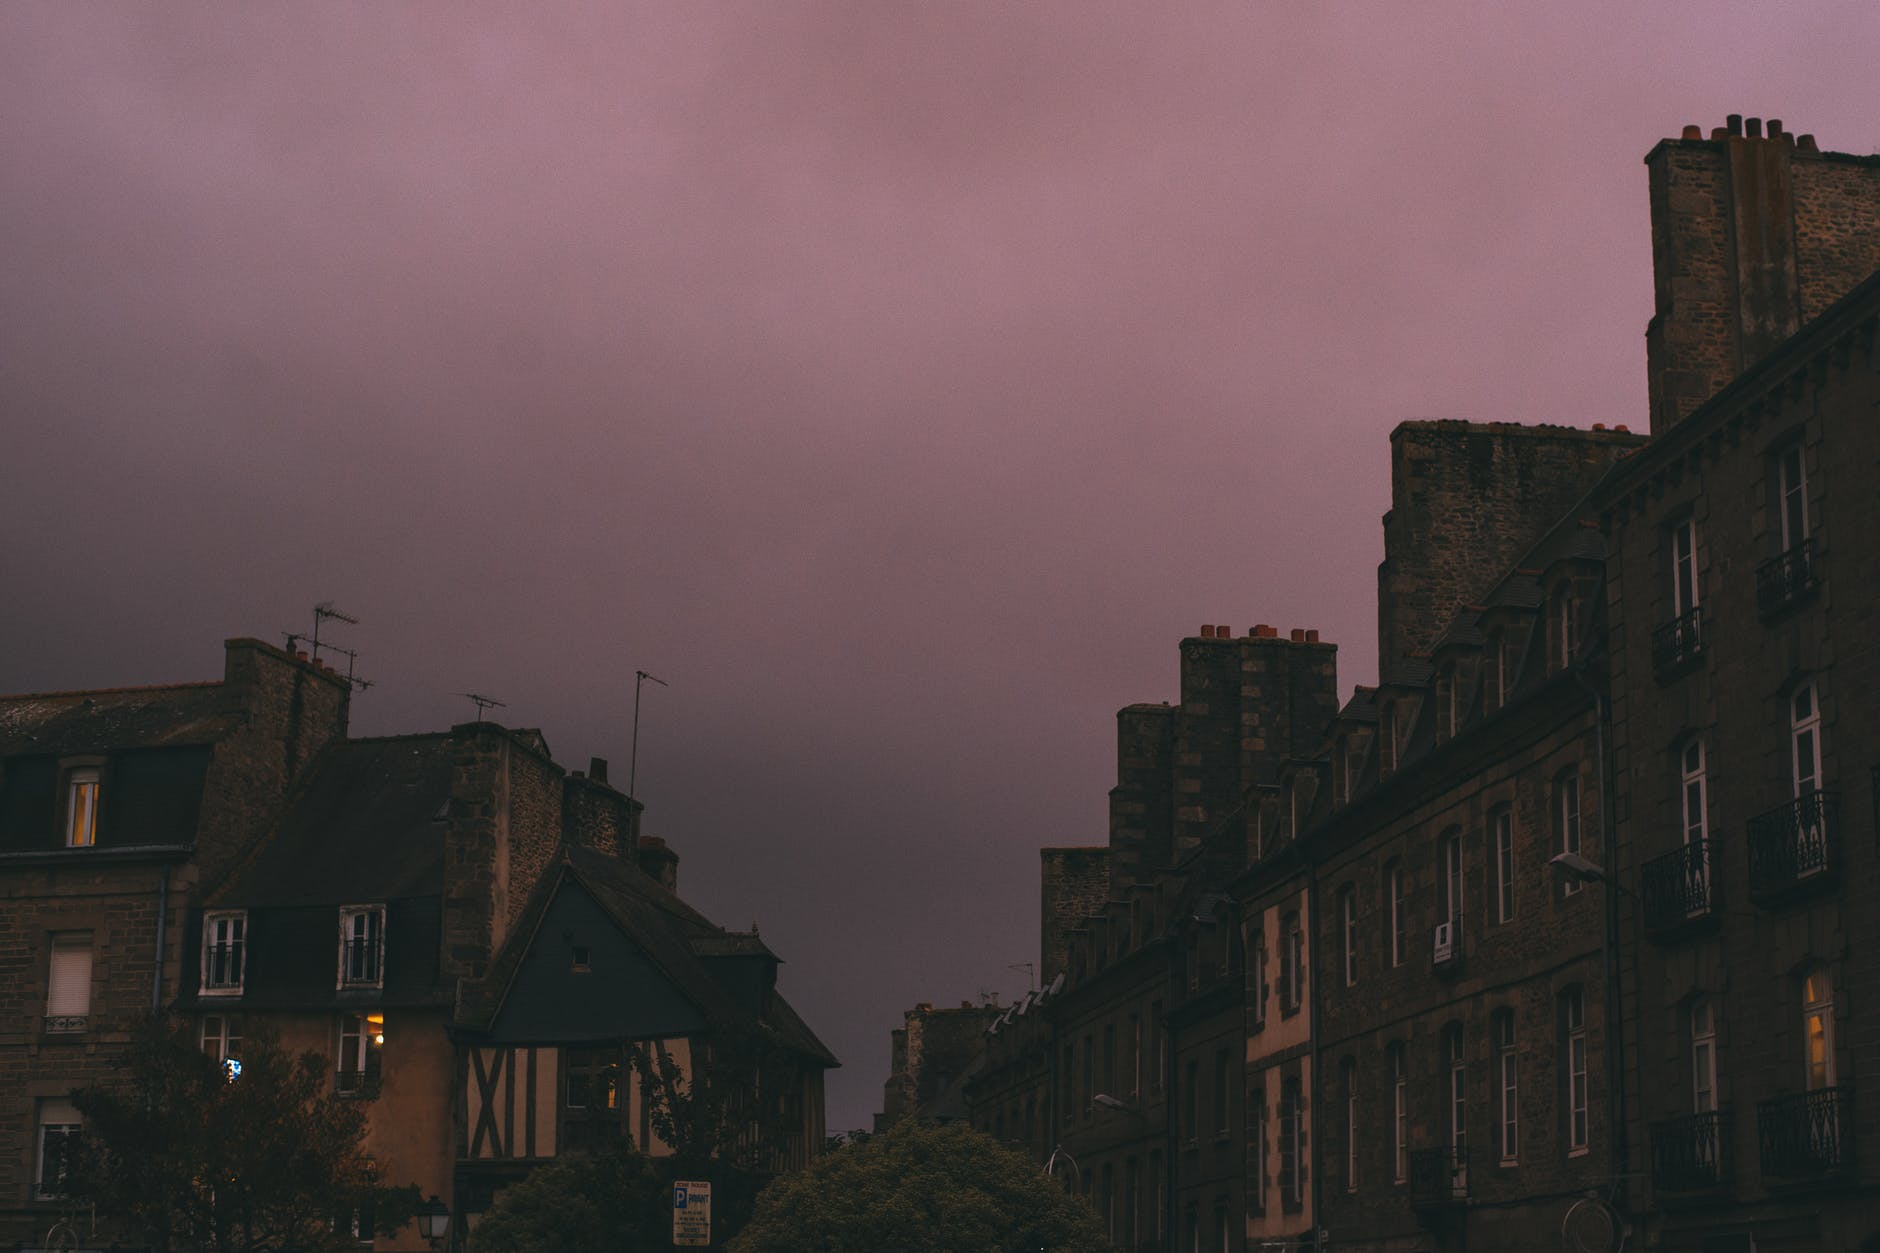 town street under dark purple sunset cloudy sky